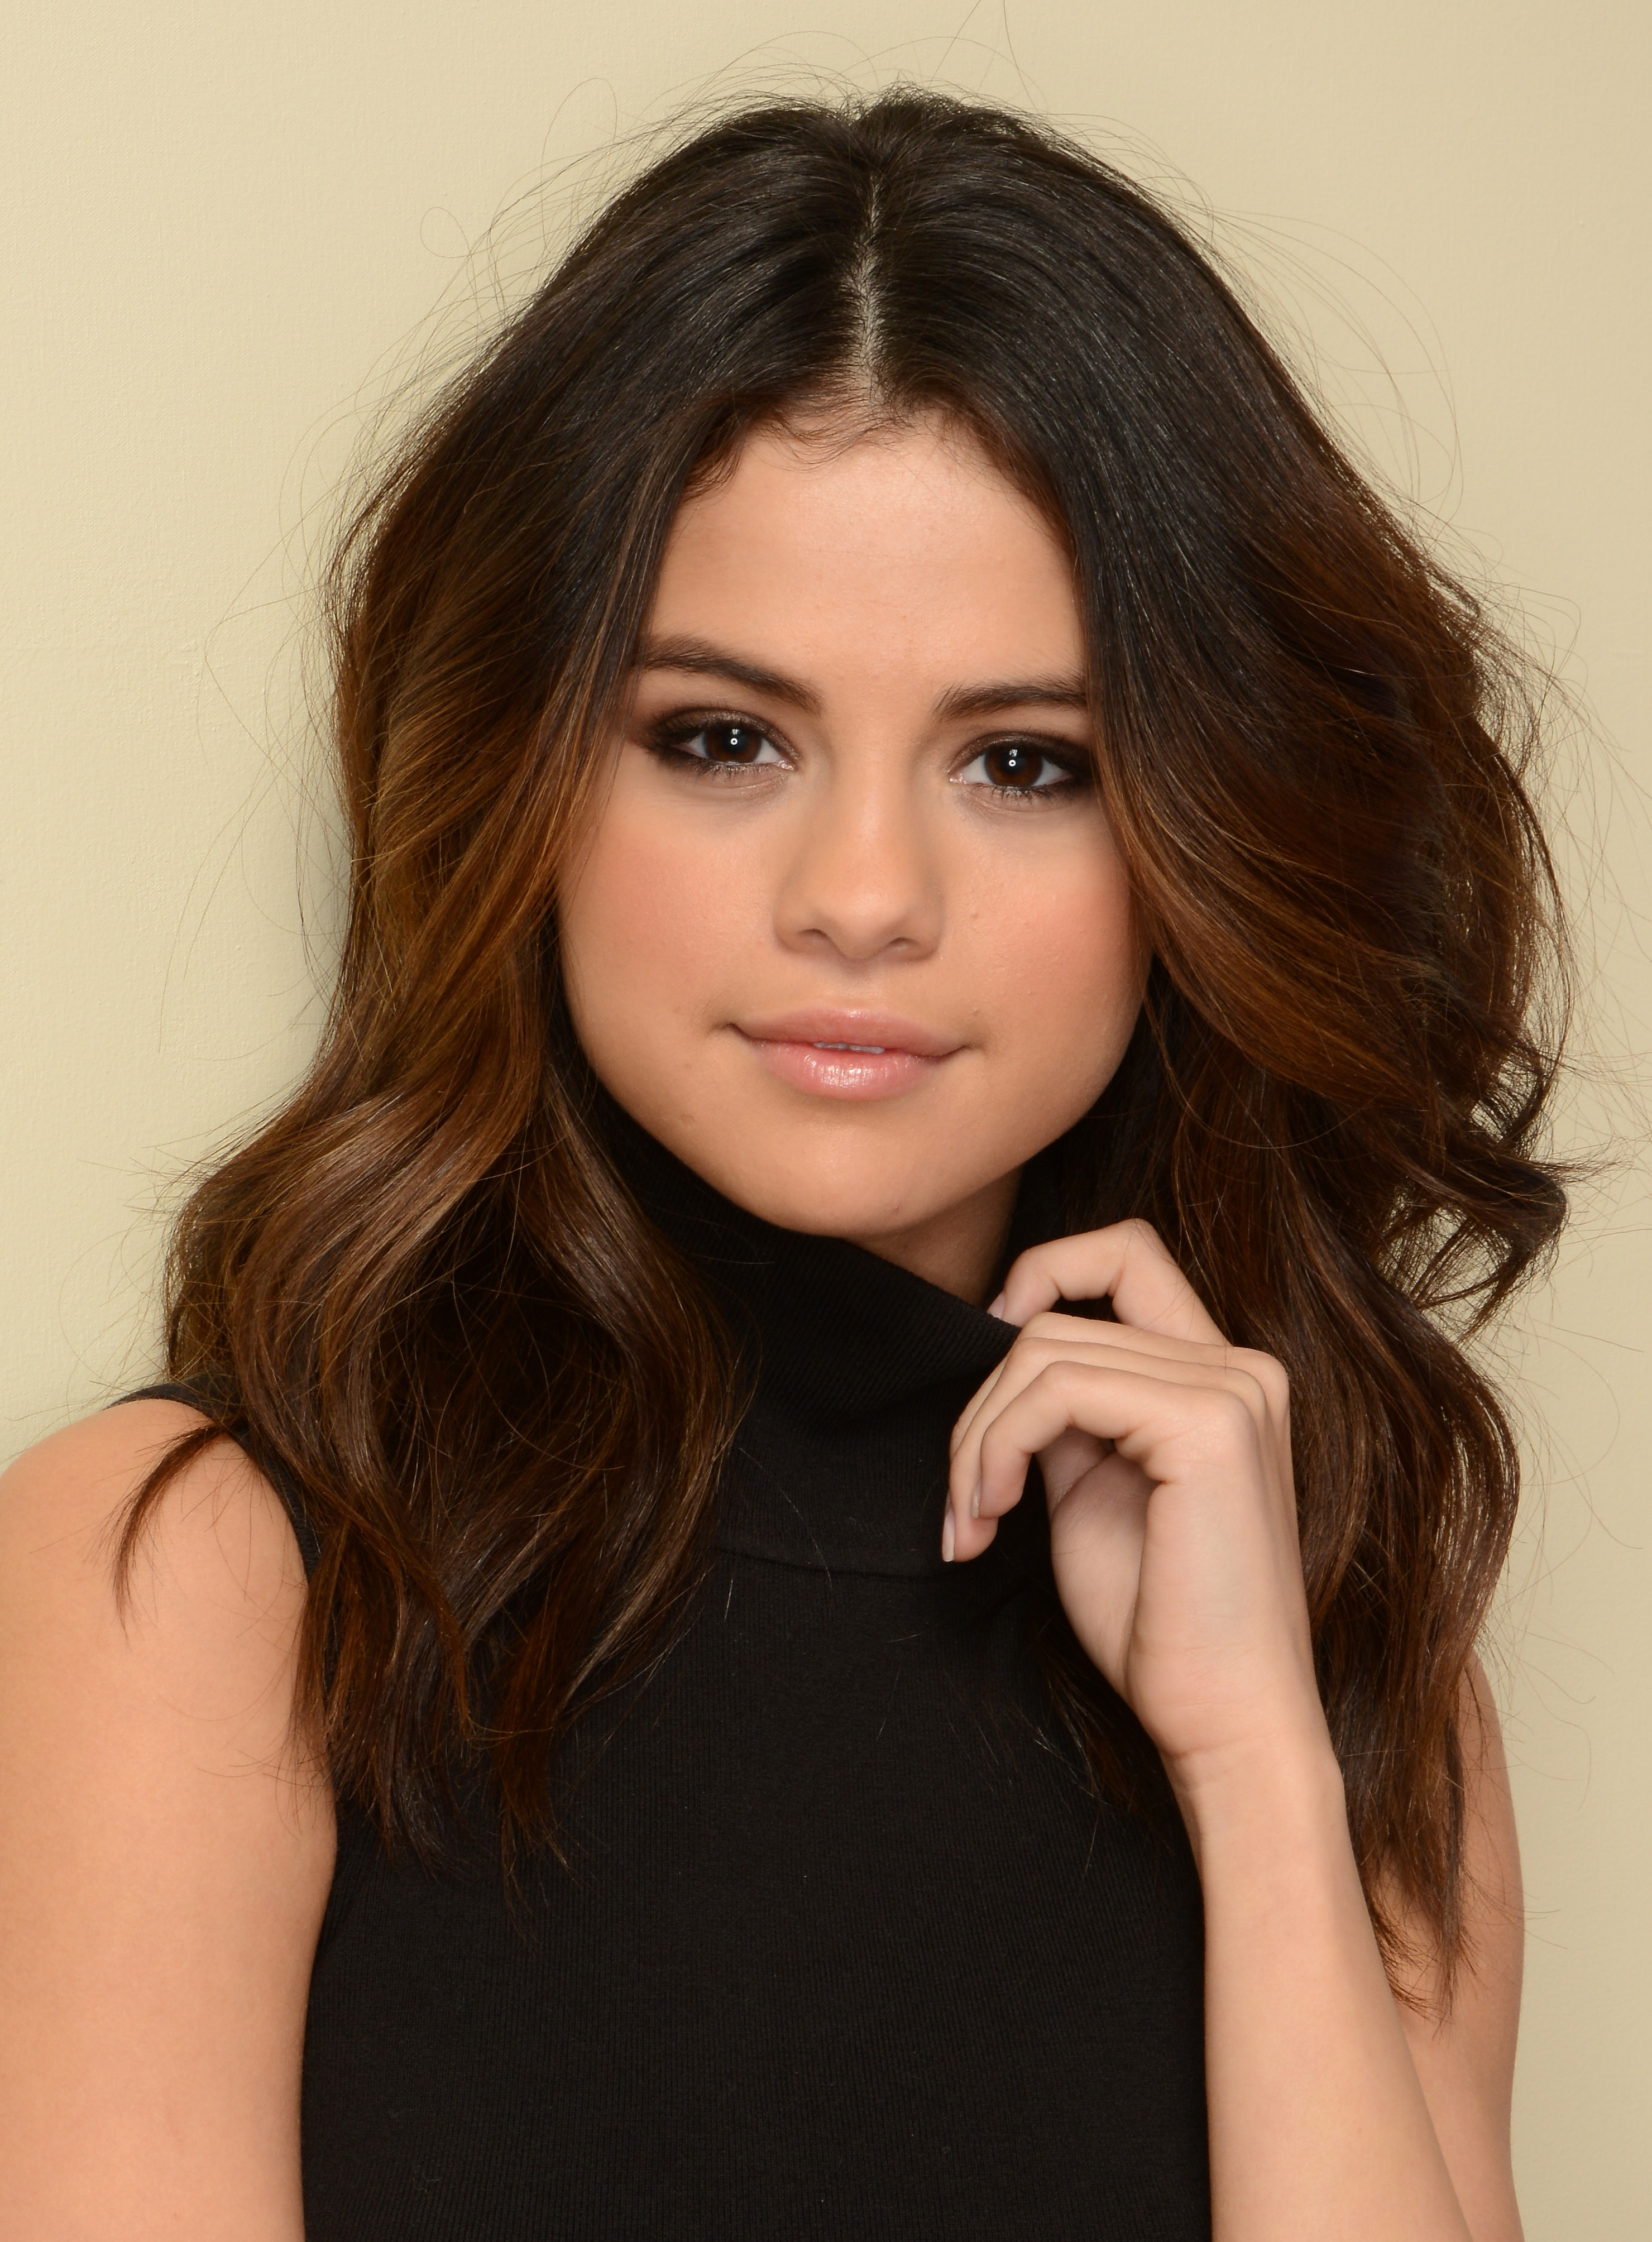 If Selena Gomez Joined Eharmony This Is What Her Profile Would Look